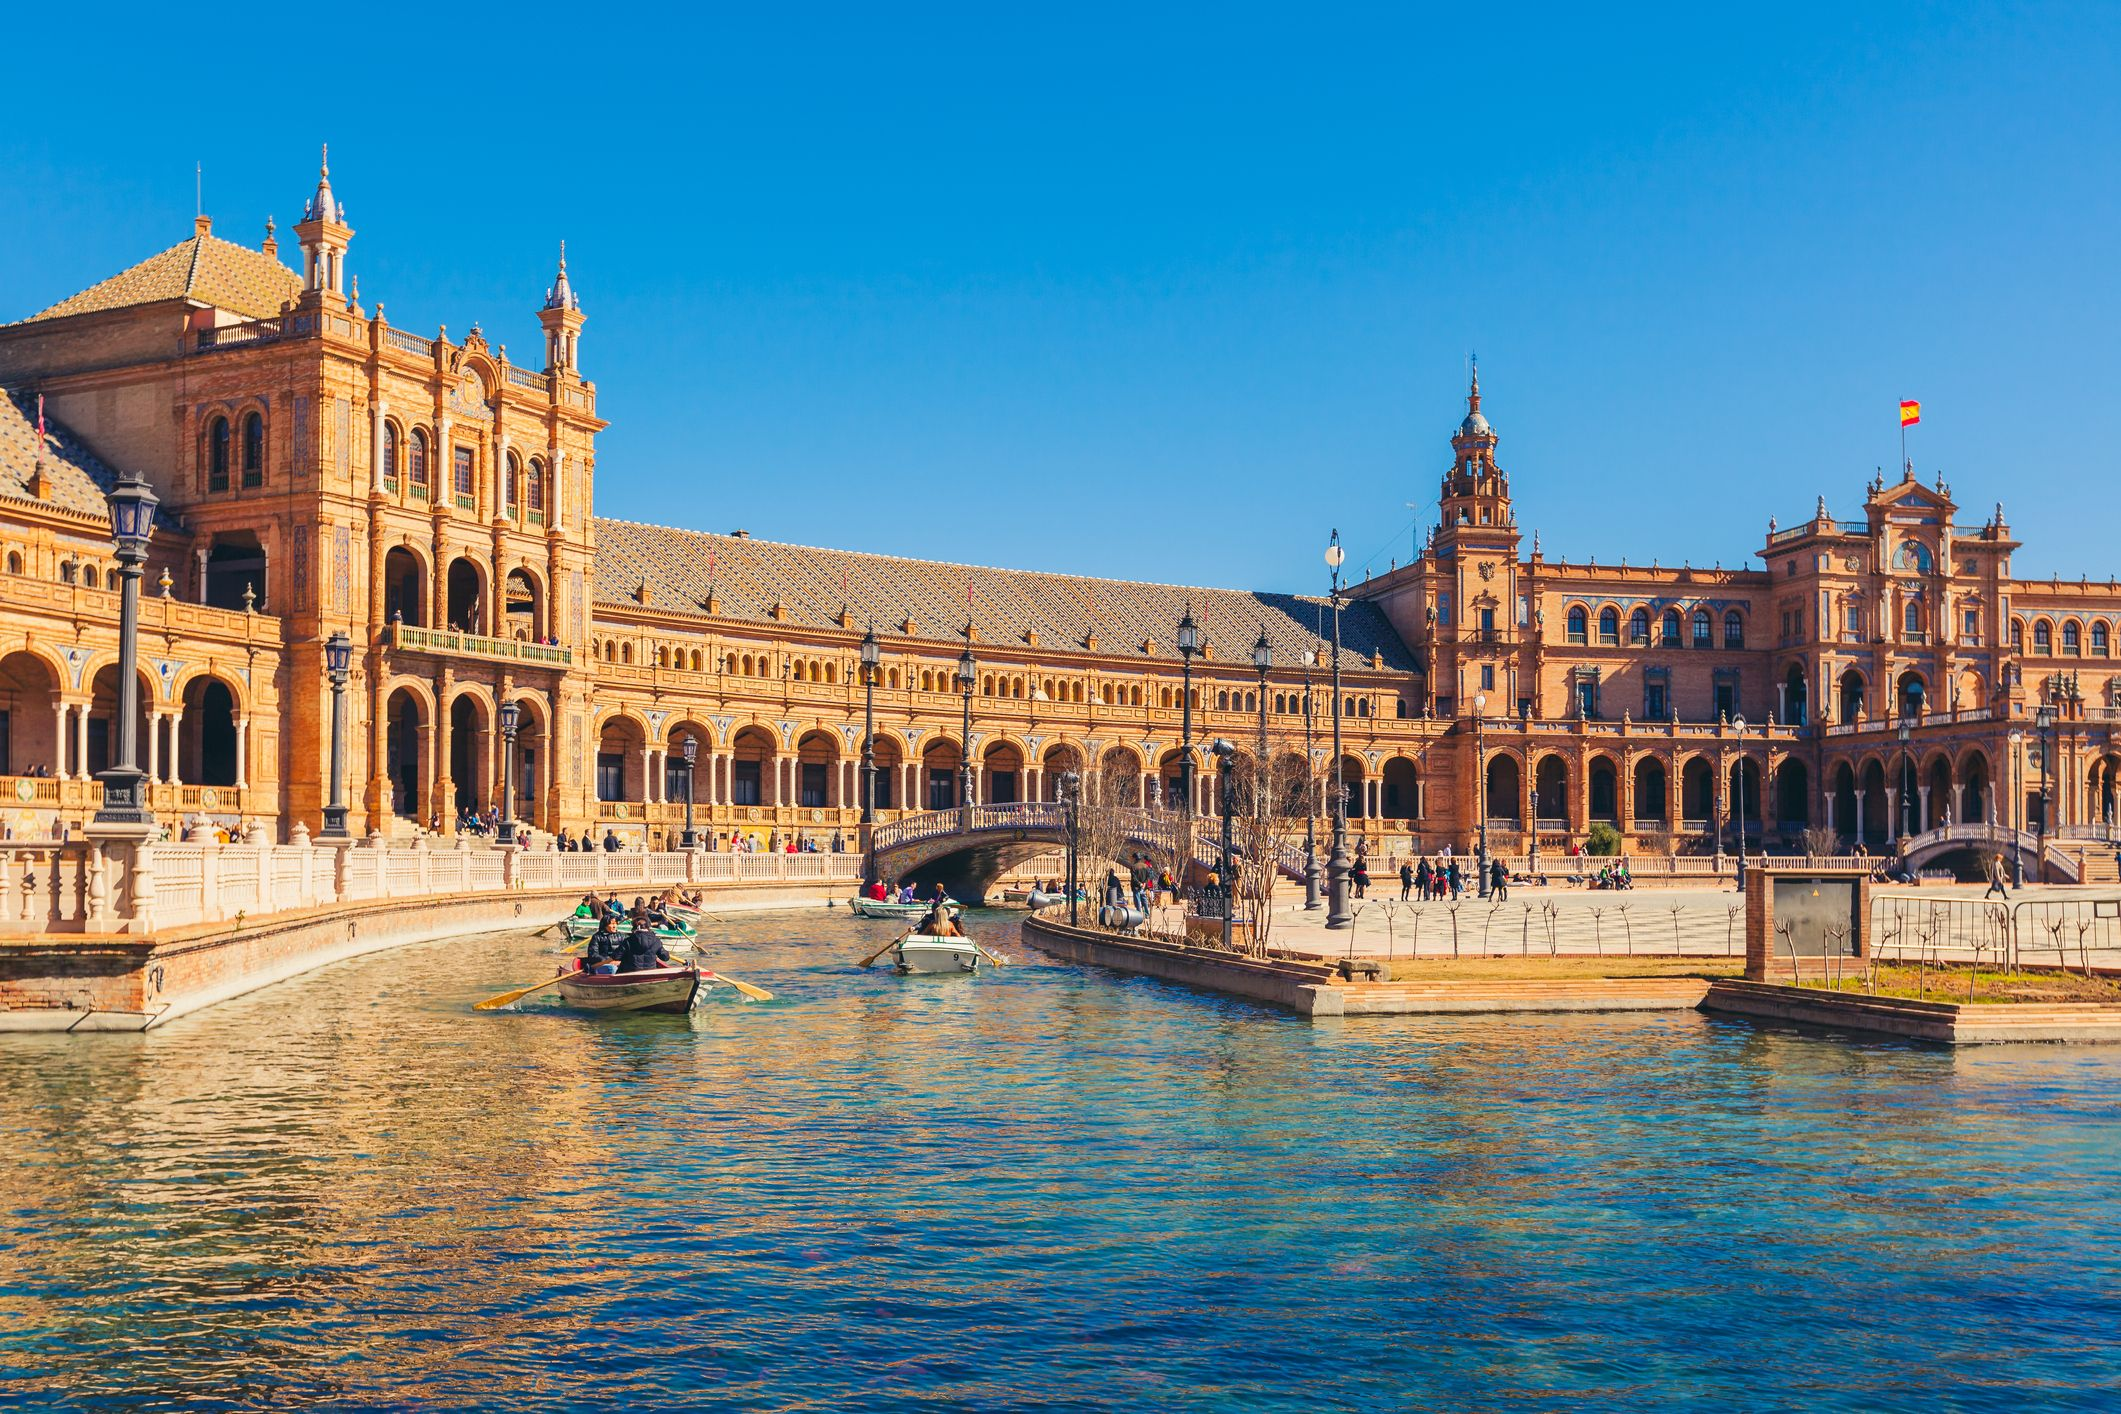 plaza de espana-most popular landmarks in the world